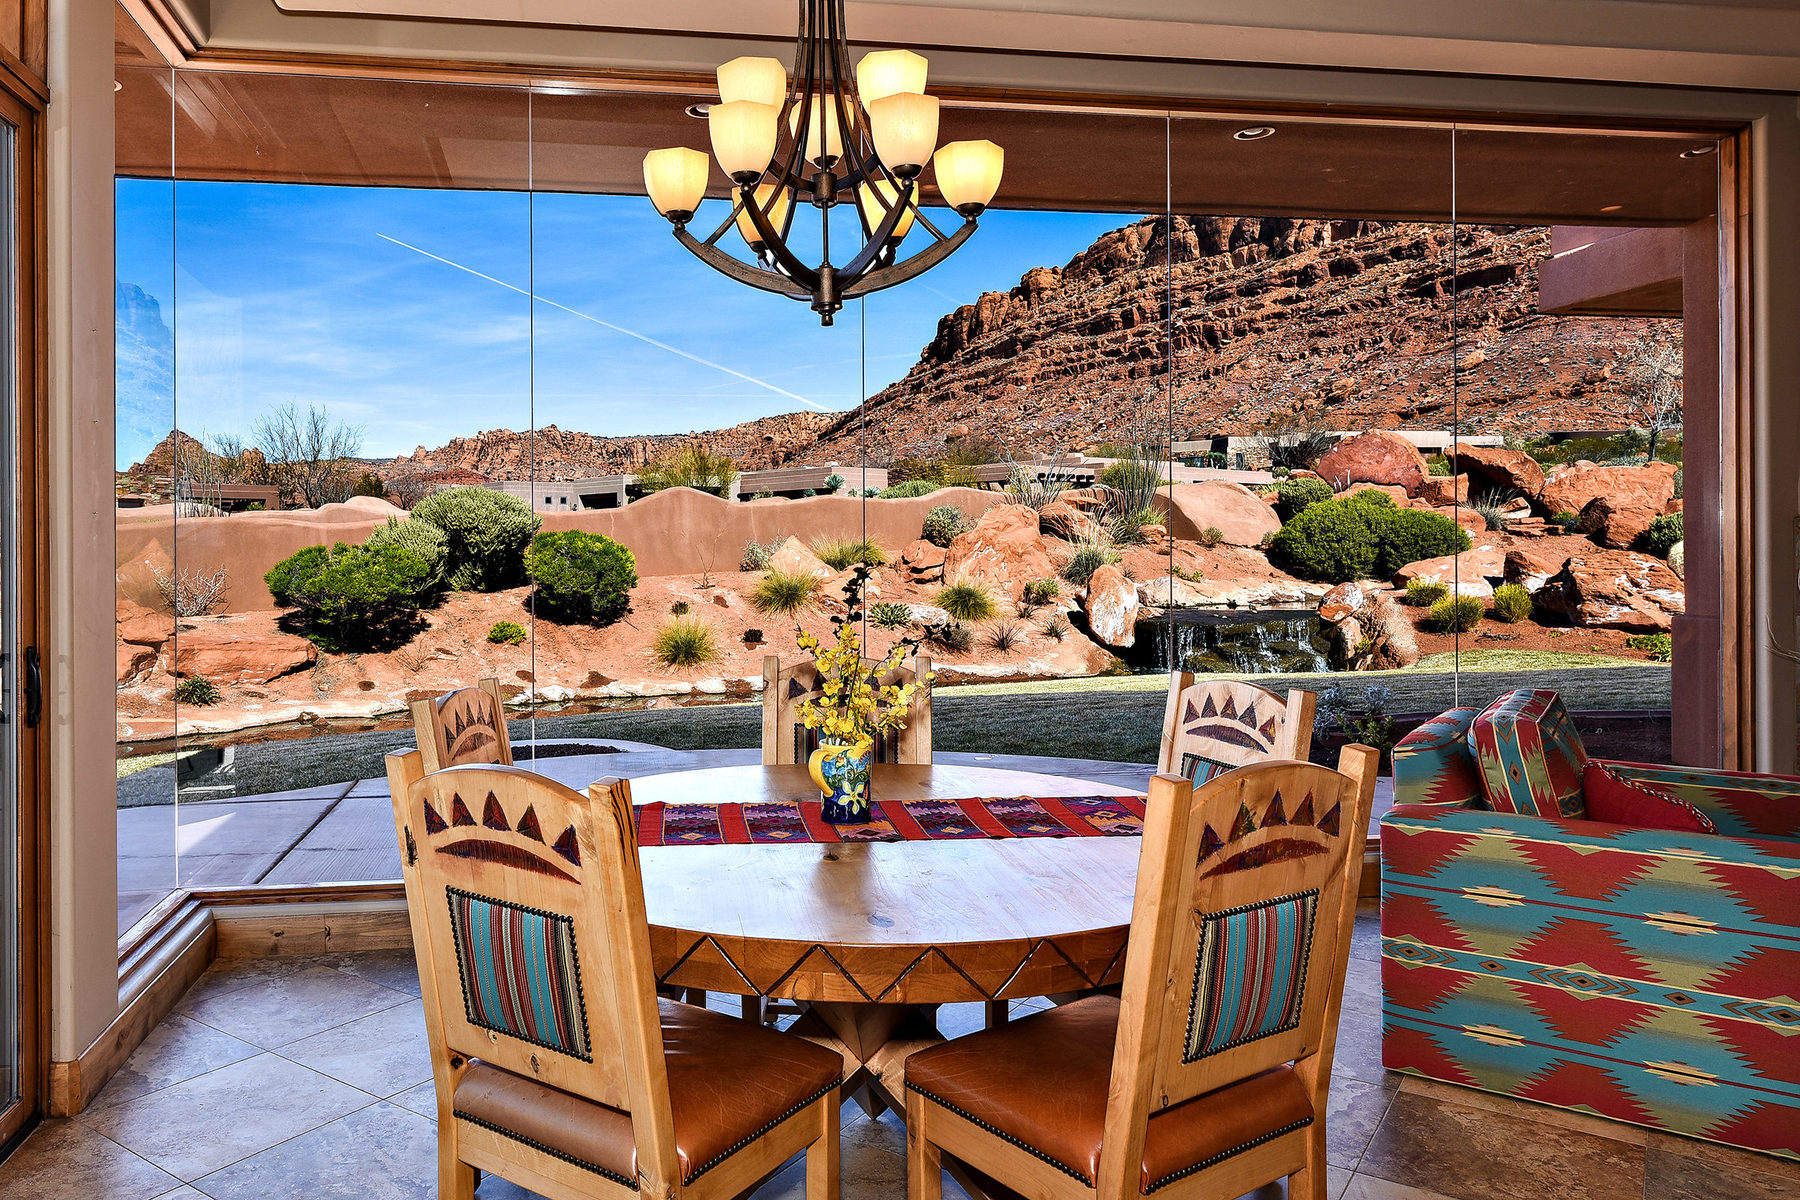 Moradia para Venda às Entrada Golf Home With Red Cliff Views 2331 W Entrada Trail #47 St. George, Utah, 84770 Estados Unidos